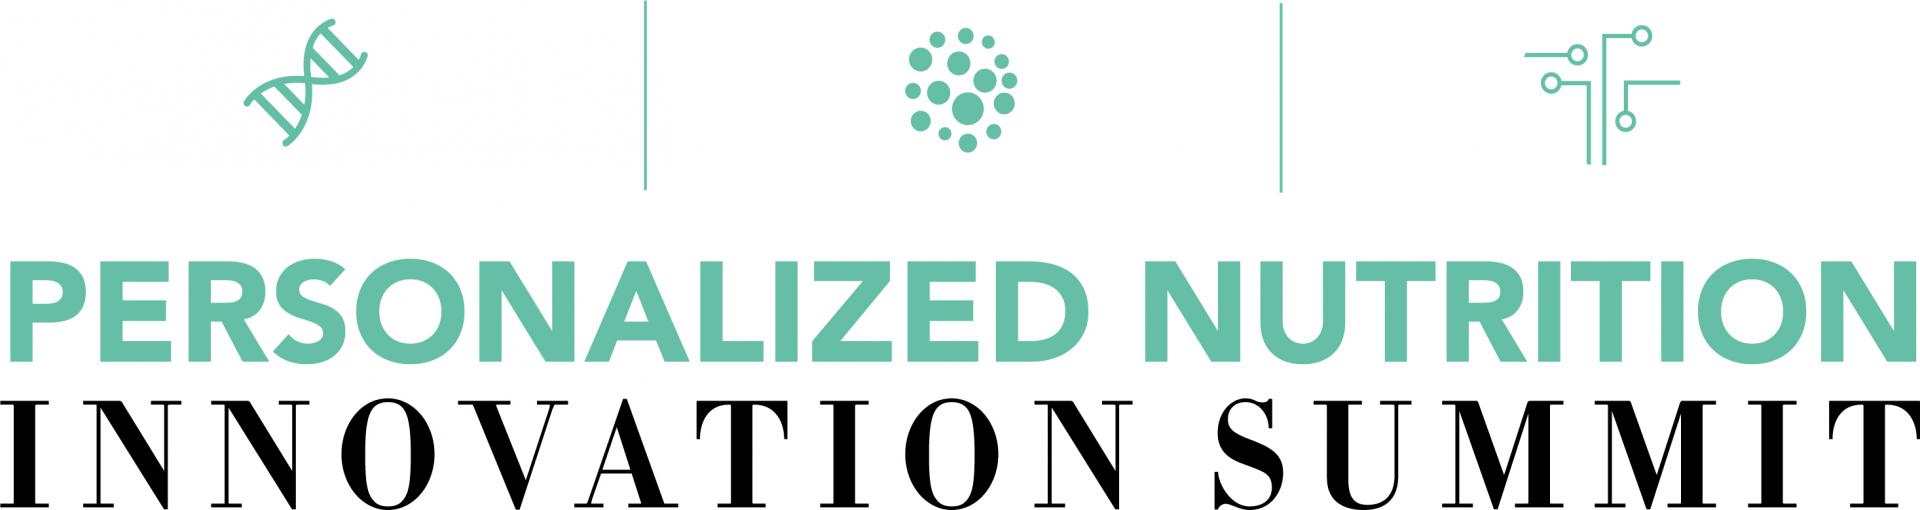 Personalized Nutrition Innovation Summit 2019